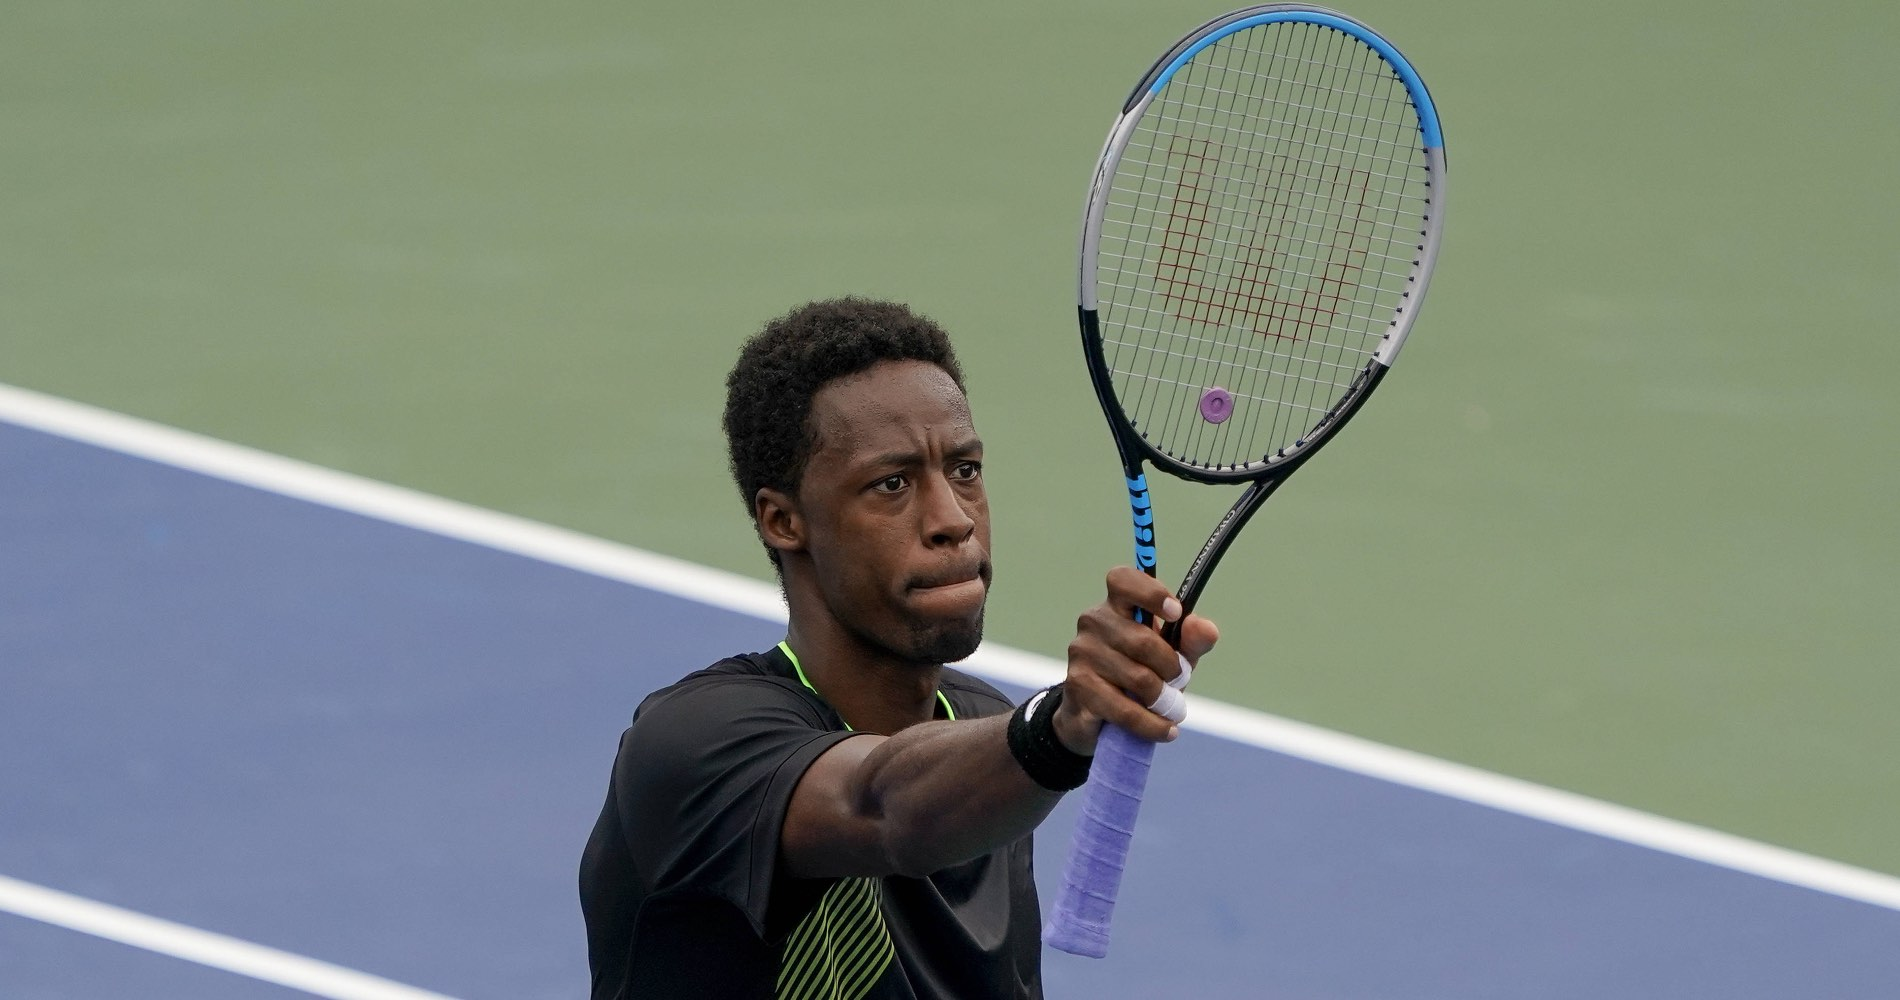 Indian Wells 2021: Gael Monfils vs. Kevin Anderson Tennis Pick and Prediction